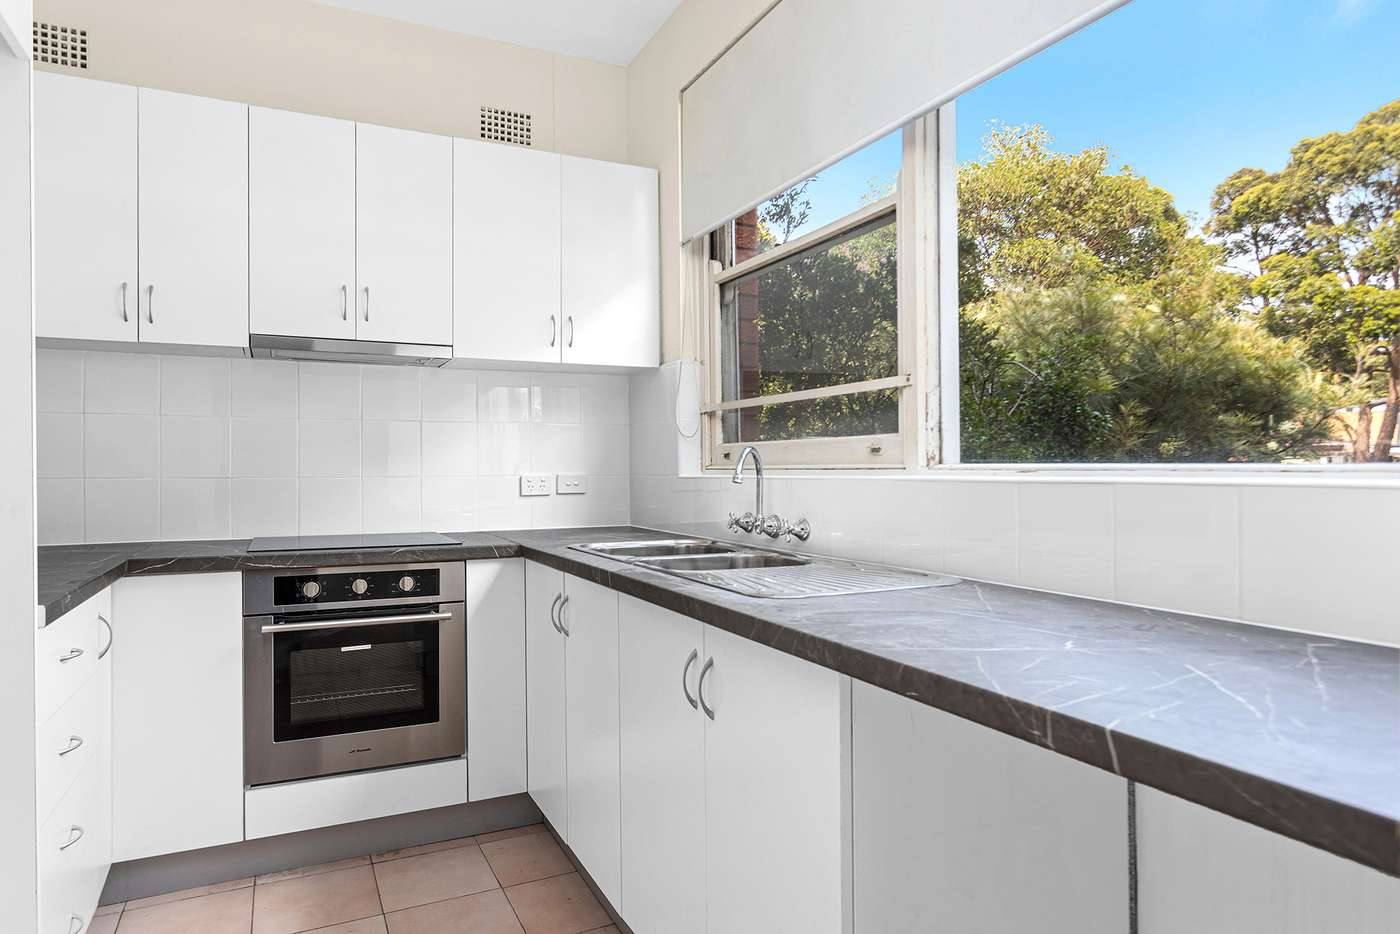 Main view of Homely apartment listing, 2/178 Chuter Avenue, Sans Souci NSW 2219